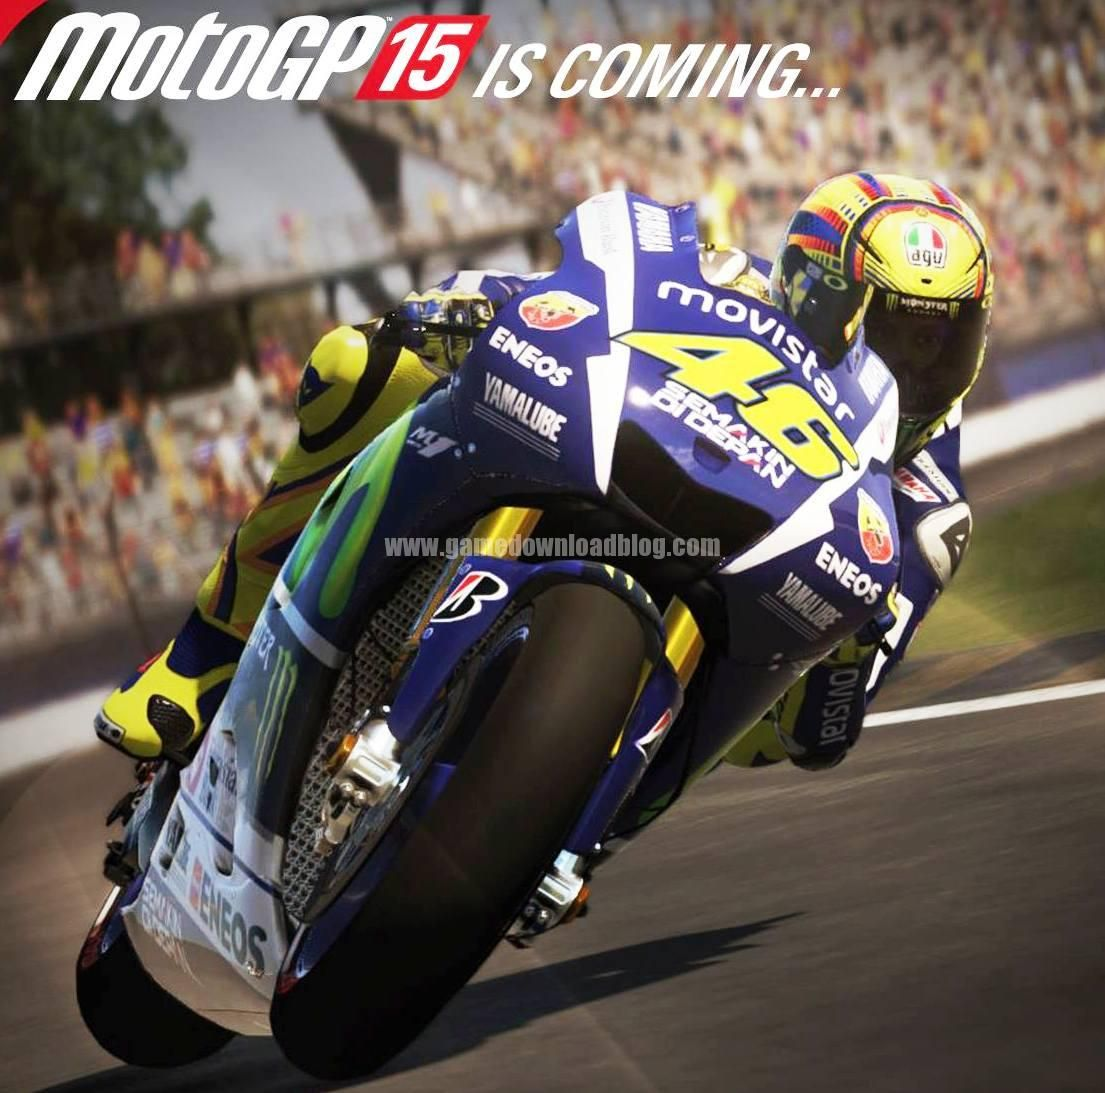 Motogp 2015 Game Download For Pc